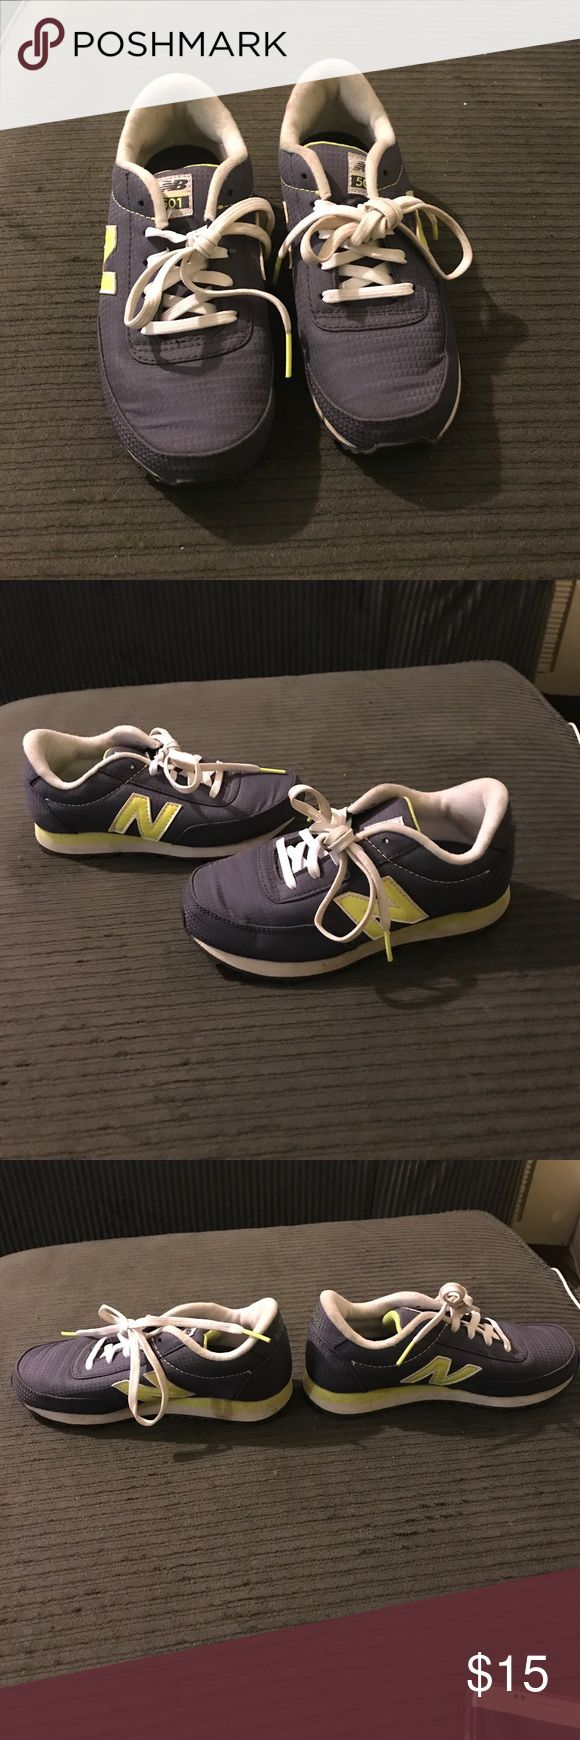 New Balance Grey & Neon Yellow Running Sneakers Girls New Balance Grey & Neon Yellow Sneakers in Great Condition worn once New Balance Shoes Sneakers